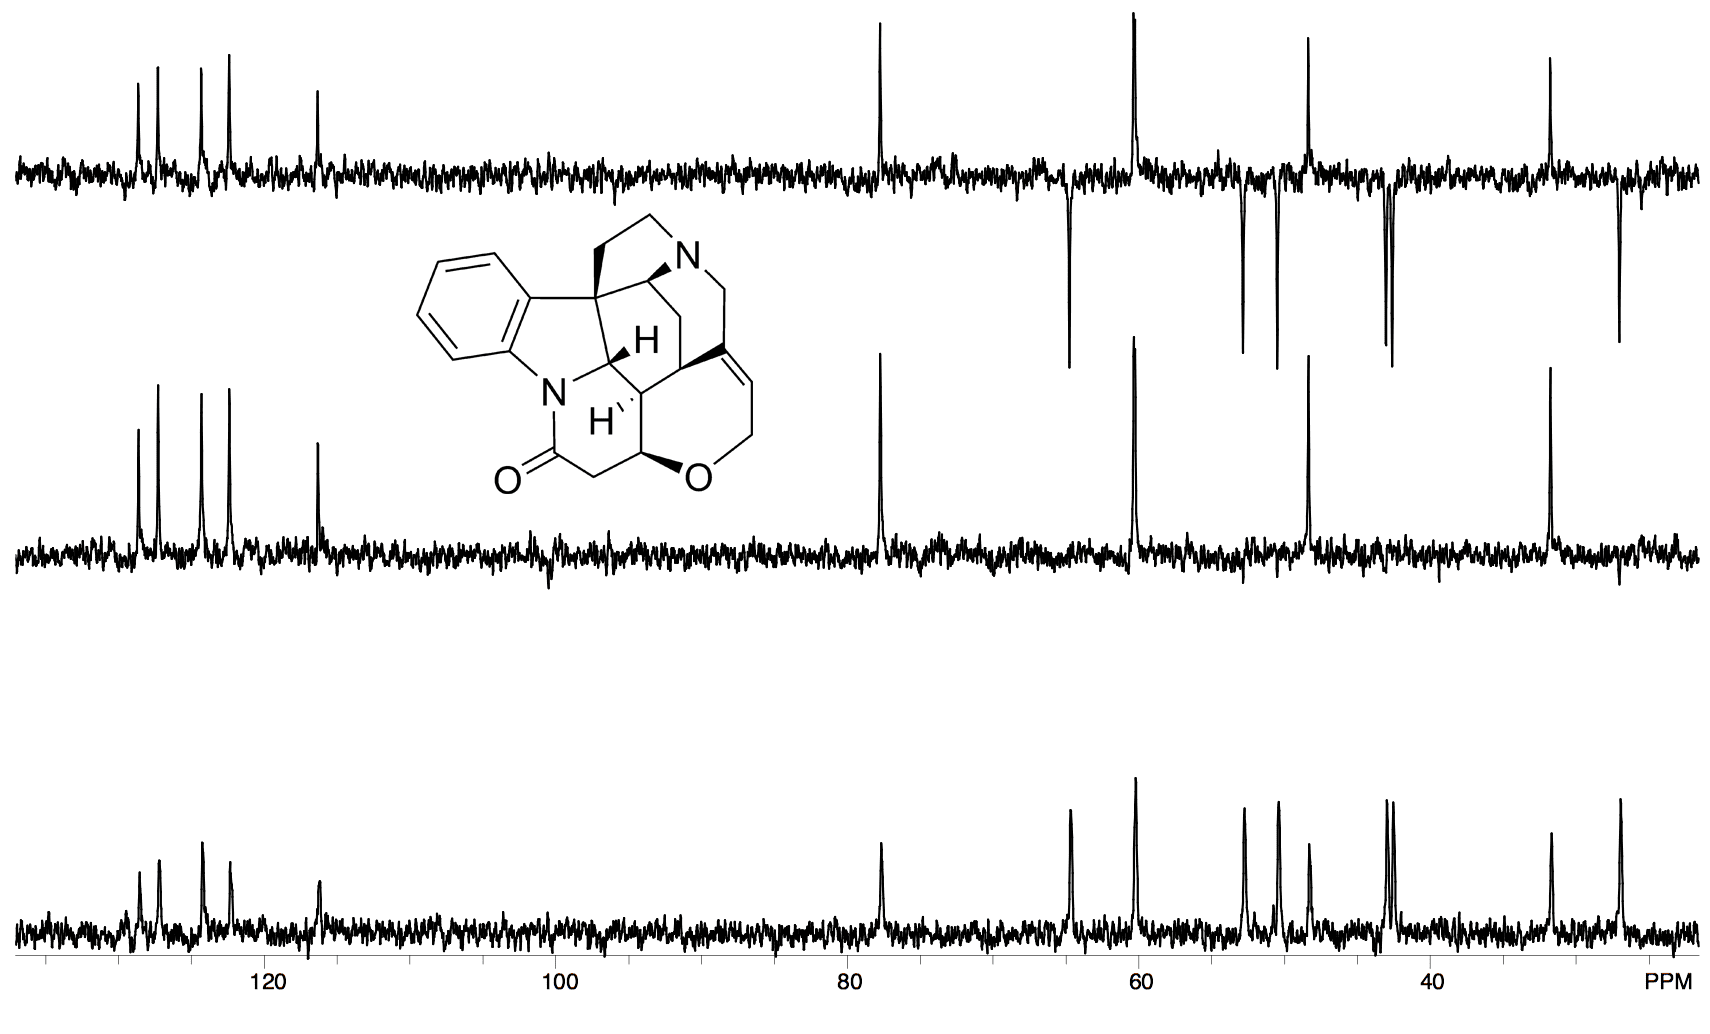 Anasazi Instruments DEPT spectrum with strychnine molecular structure graph